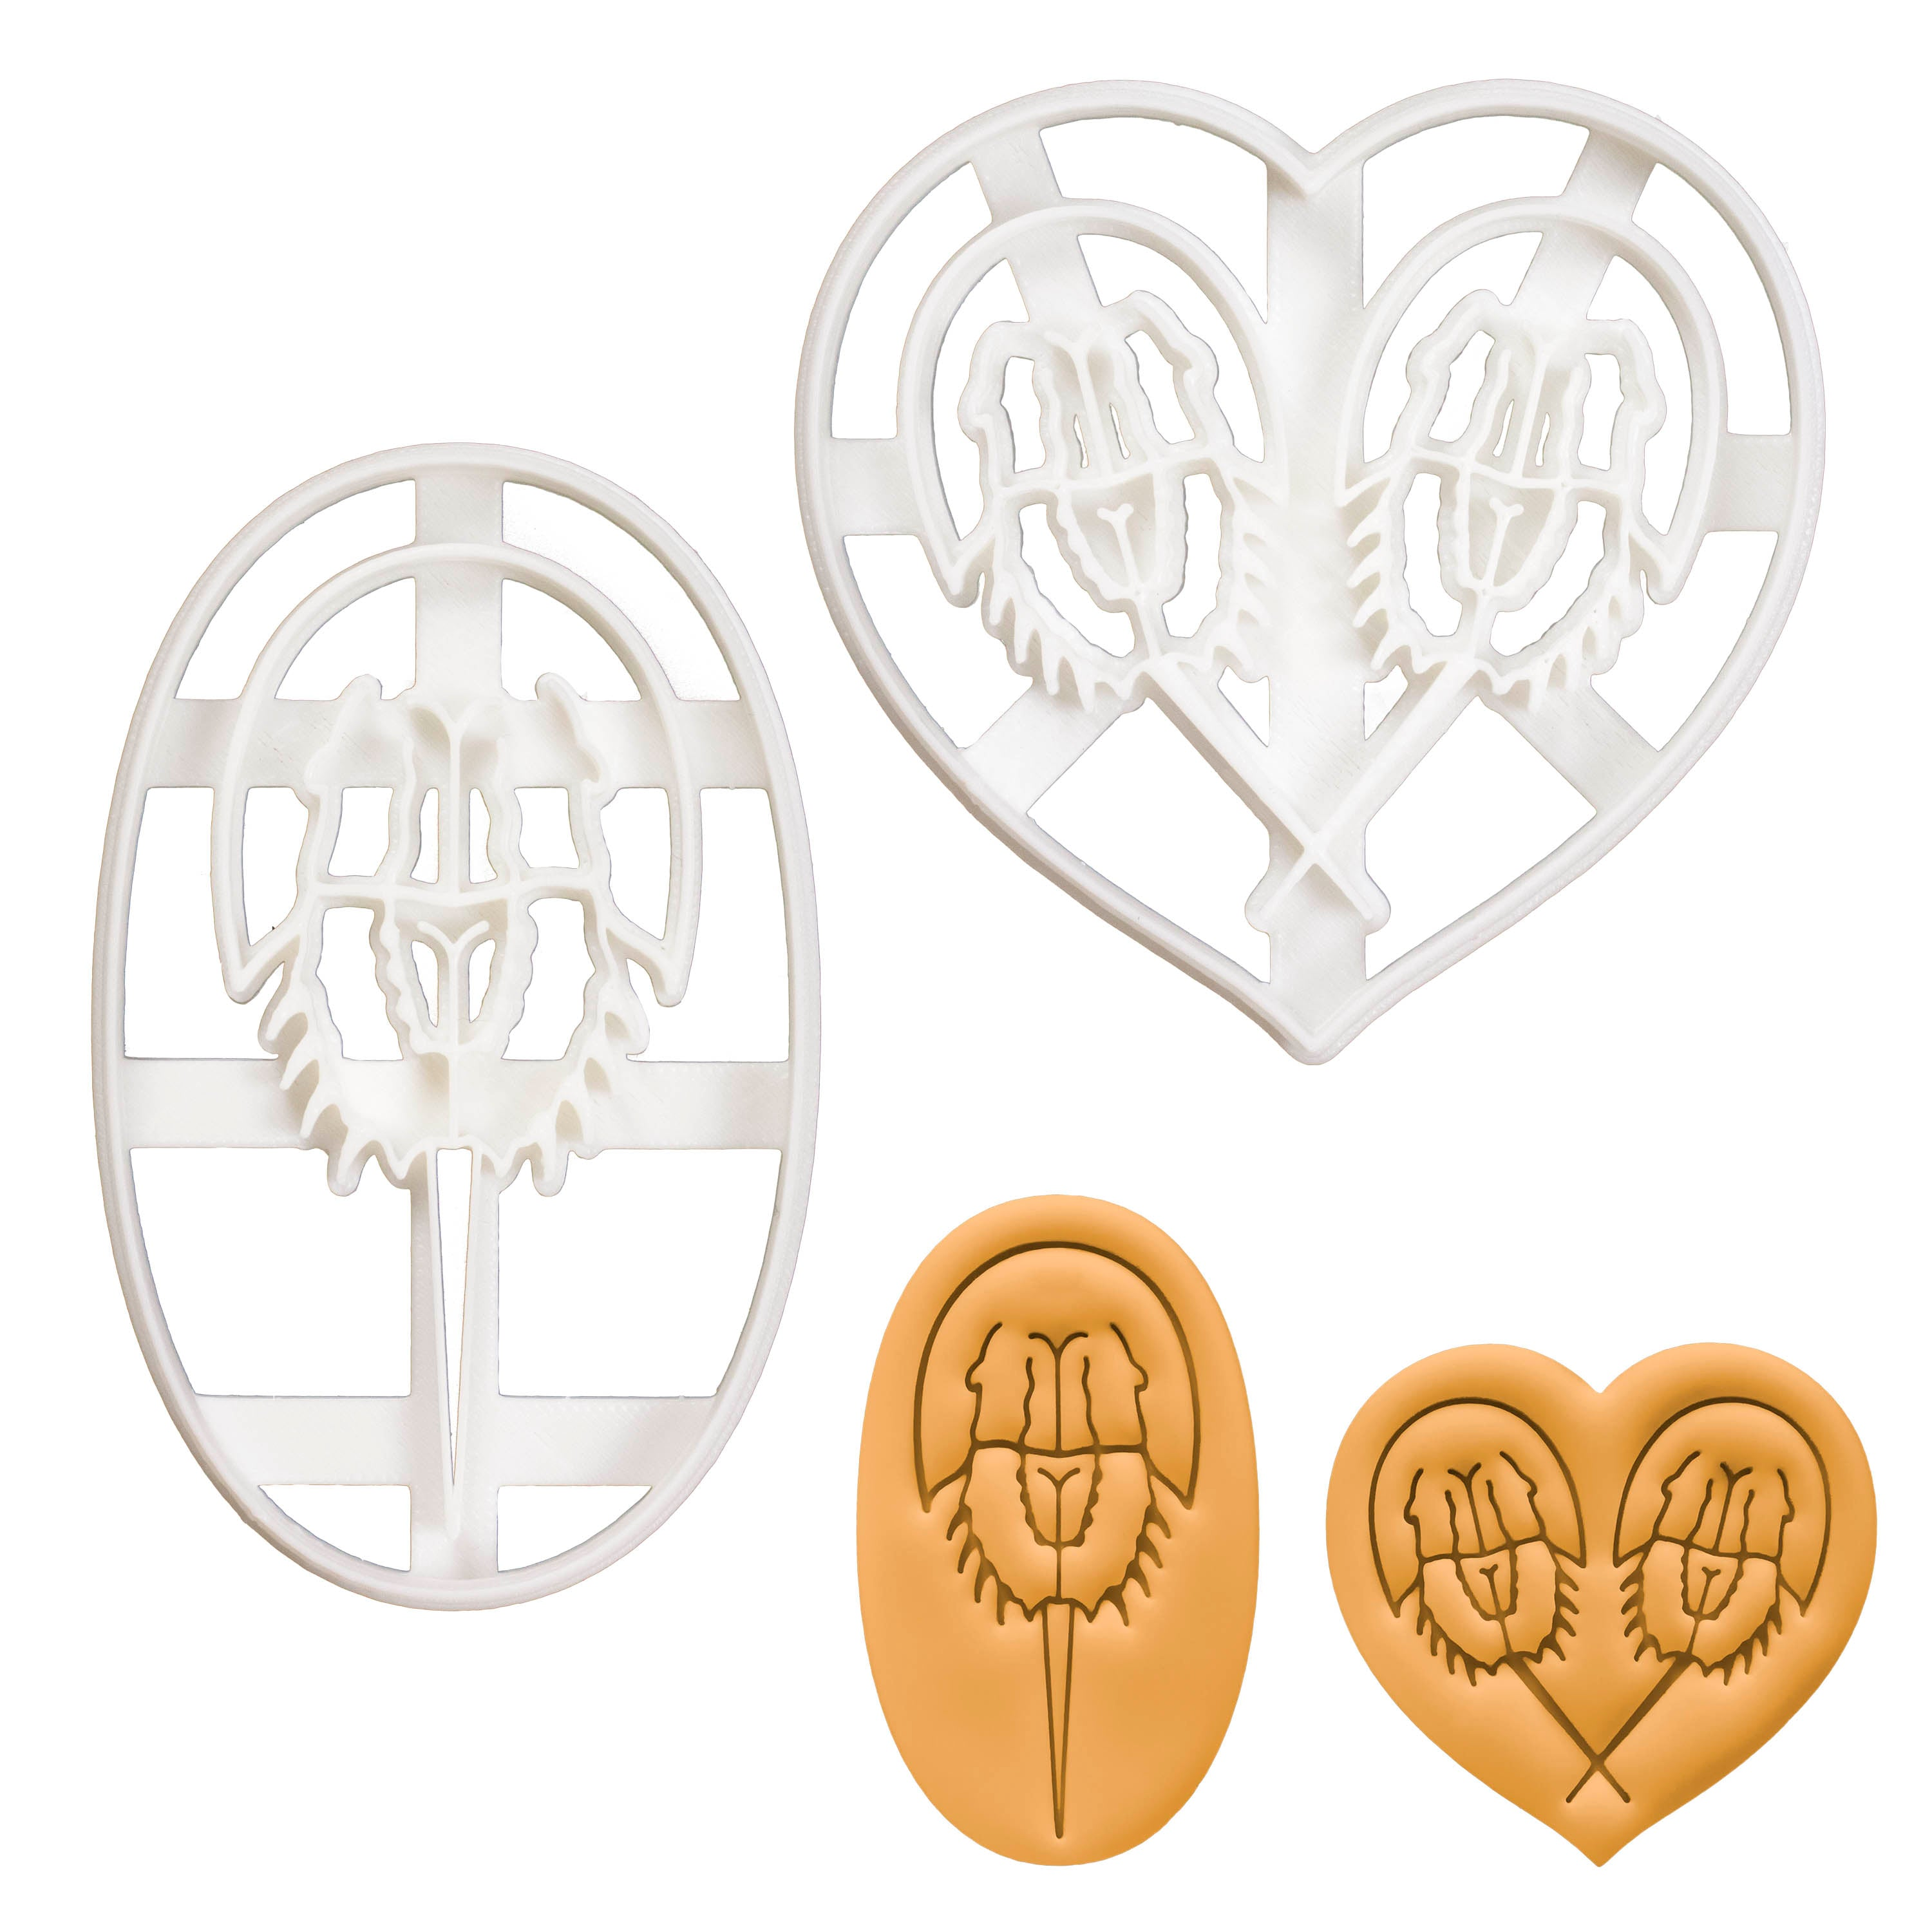 Set of 2 Horseshoe Crab cookie cutters (Designs: Profile and Love)